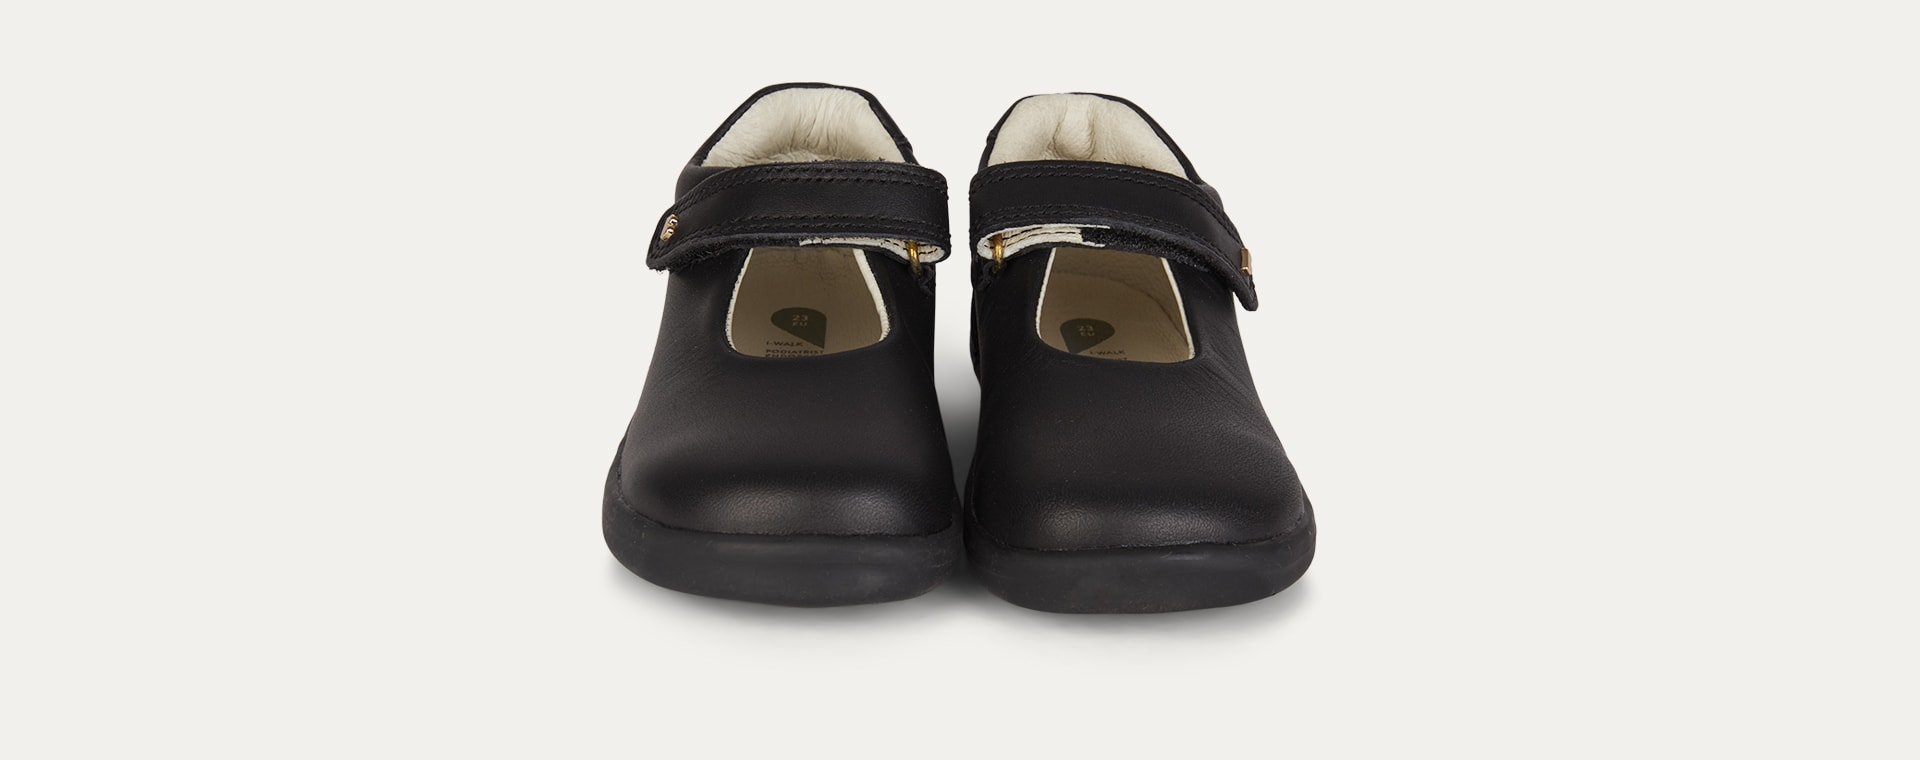 Black Bobux I-Walk Delight Mary Jane Shoe